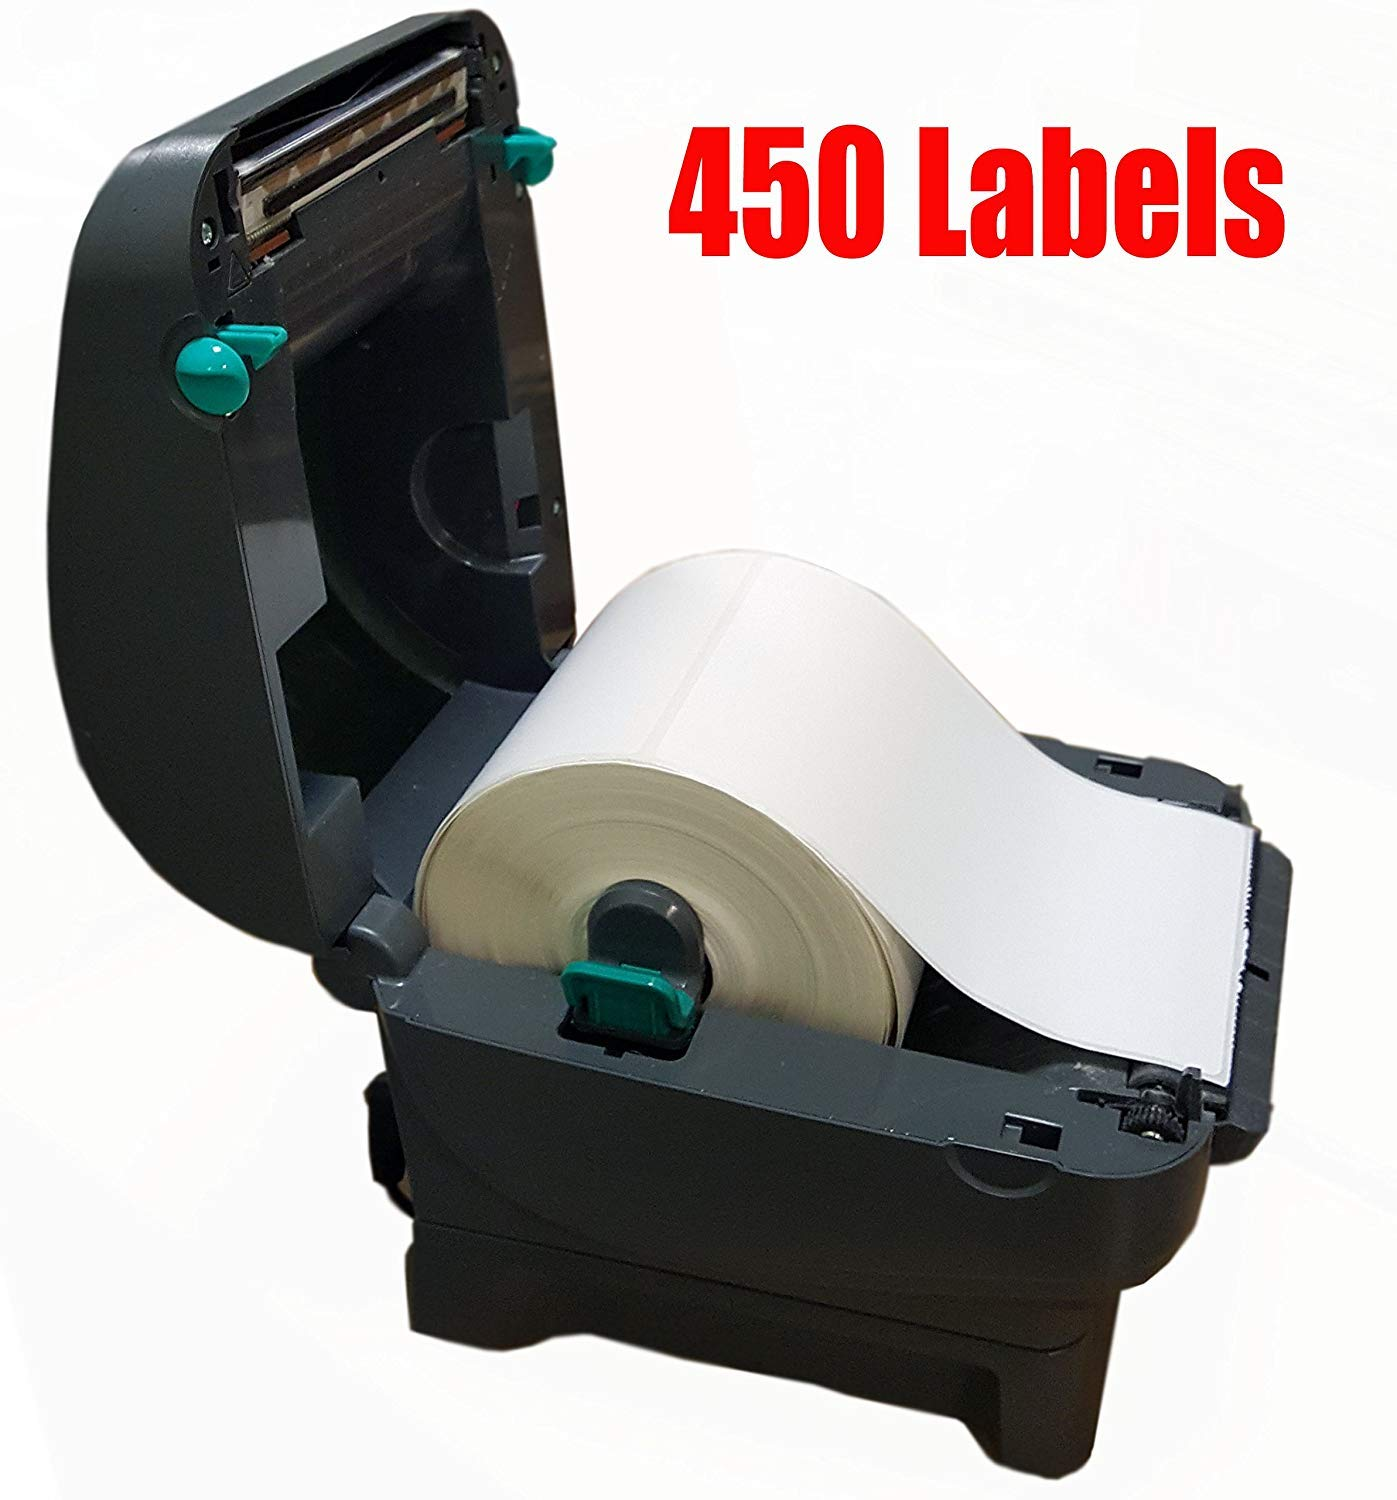 iMBAPrice - 1 Roll of 450 (USA) 4x6 Direct Thermal Labels for Zebra 2844 ZP-450 ZP-500 ZP-505 (1 inch core) by iMBAPrice